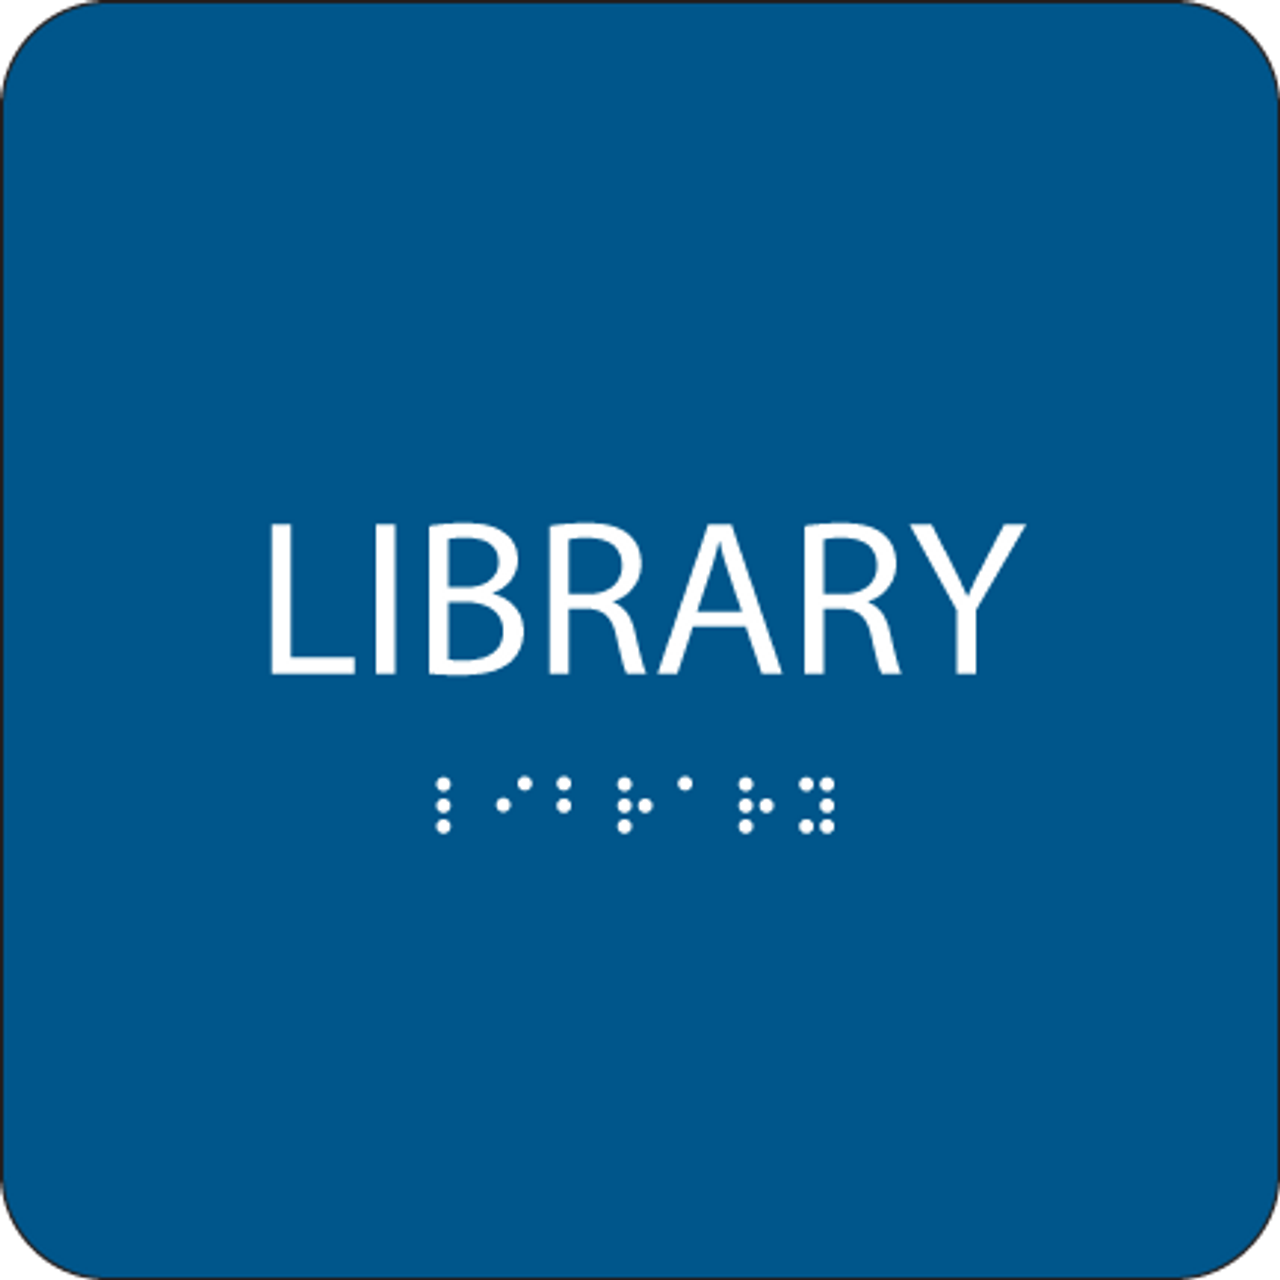 Blue Library Tactile Sign